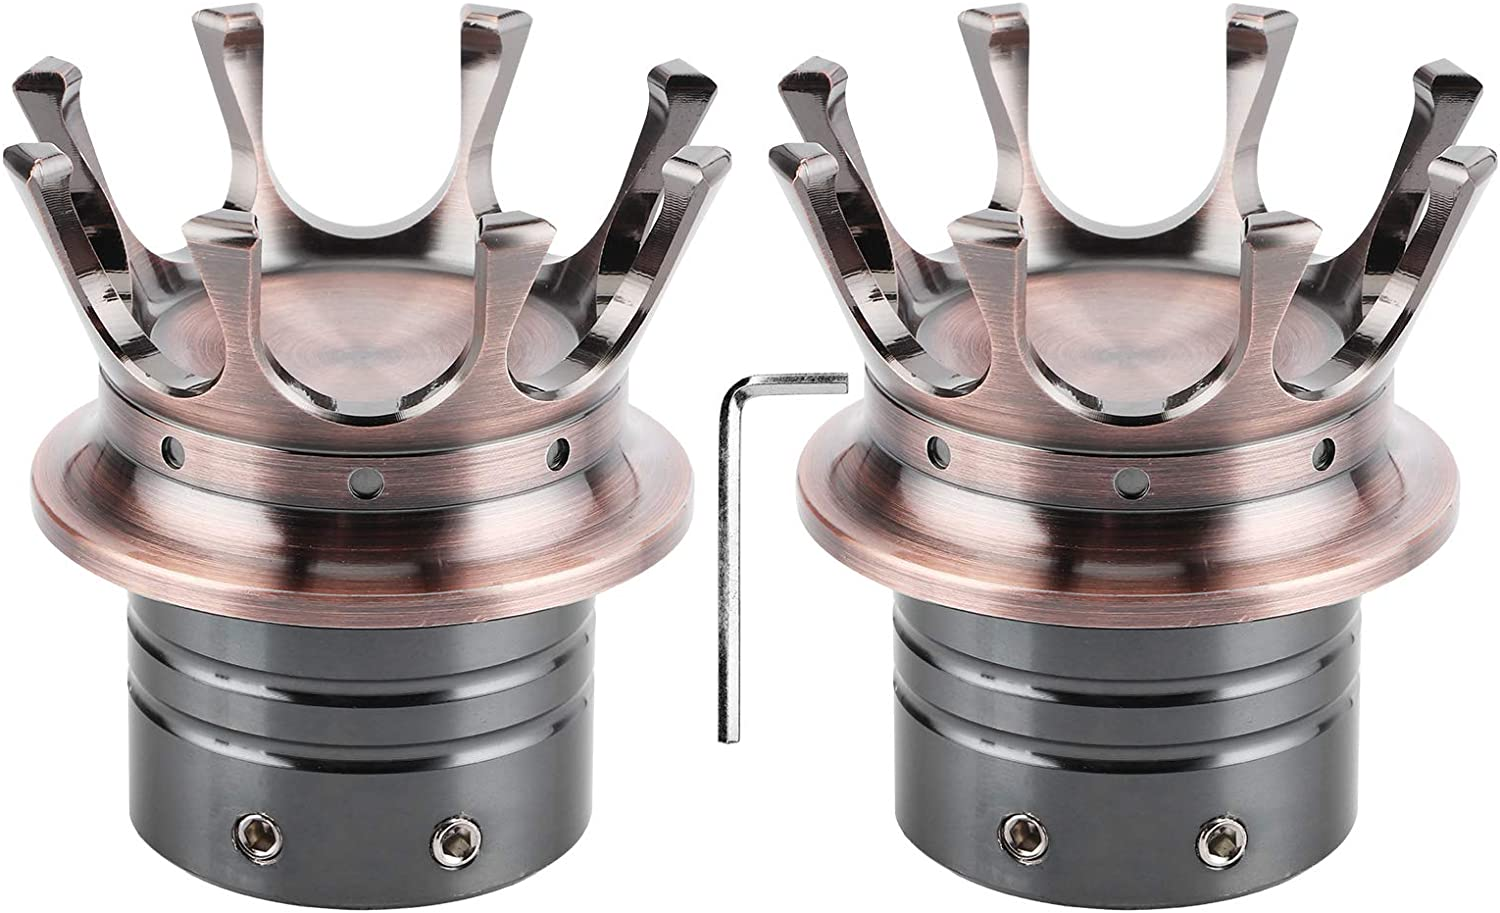 Aramox Front Axle Nut Covers Deluxe Our shop OFFers the best service C Kit Caps Colors 5